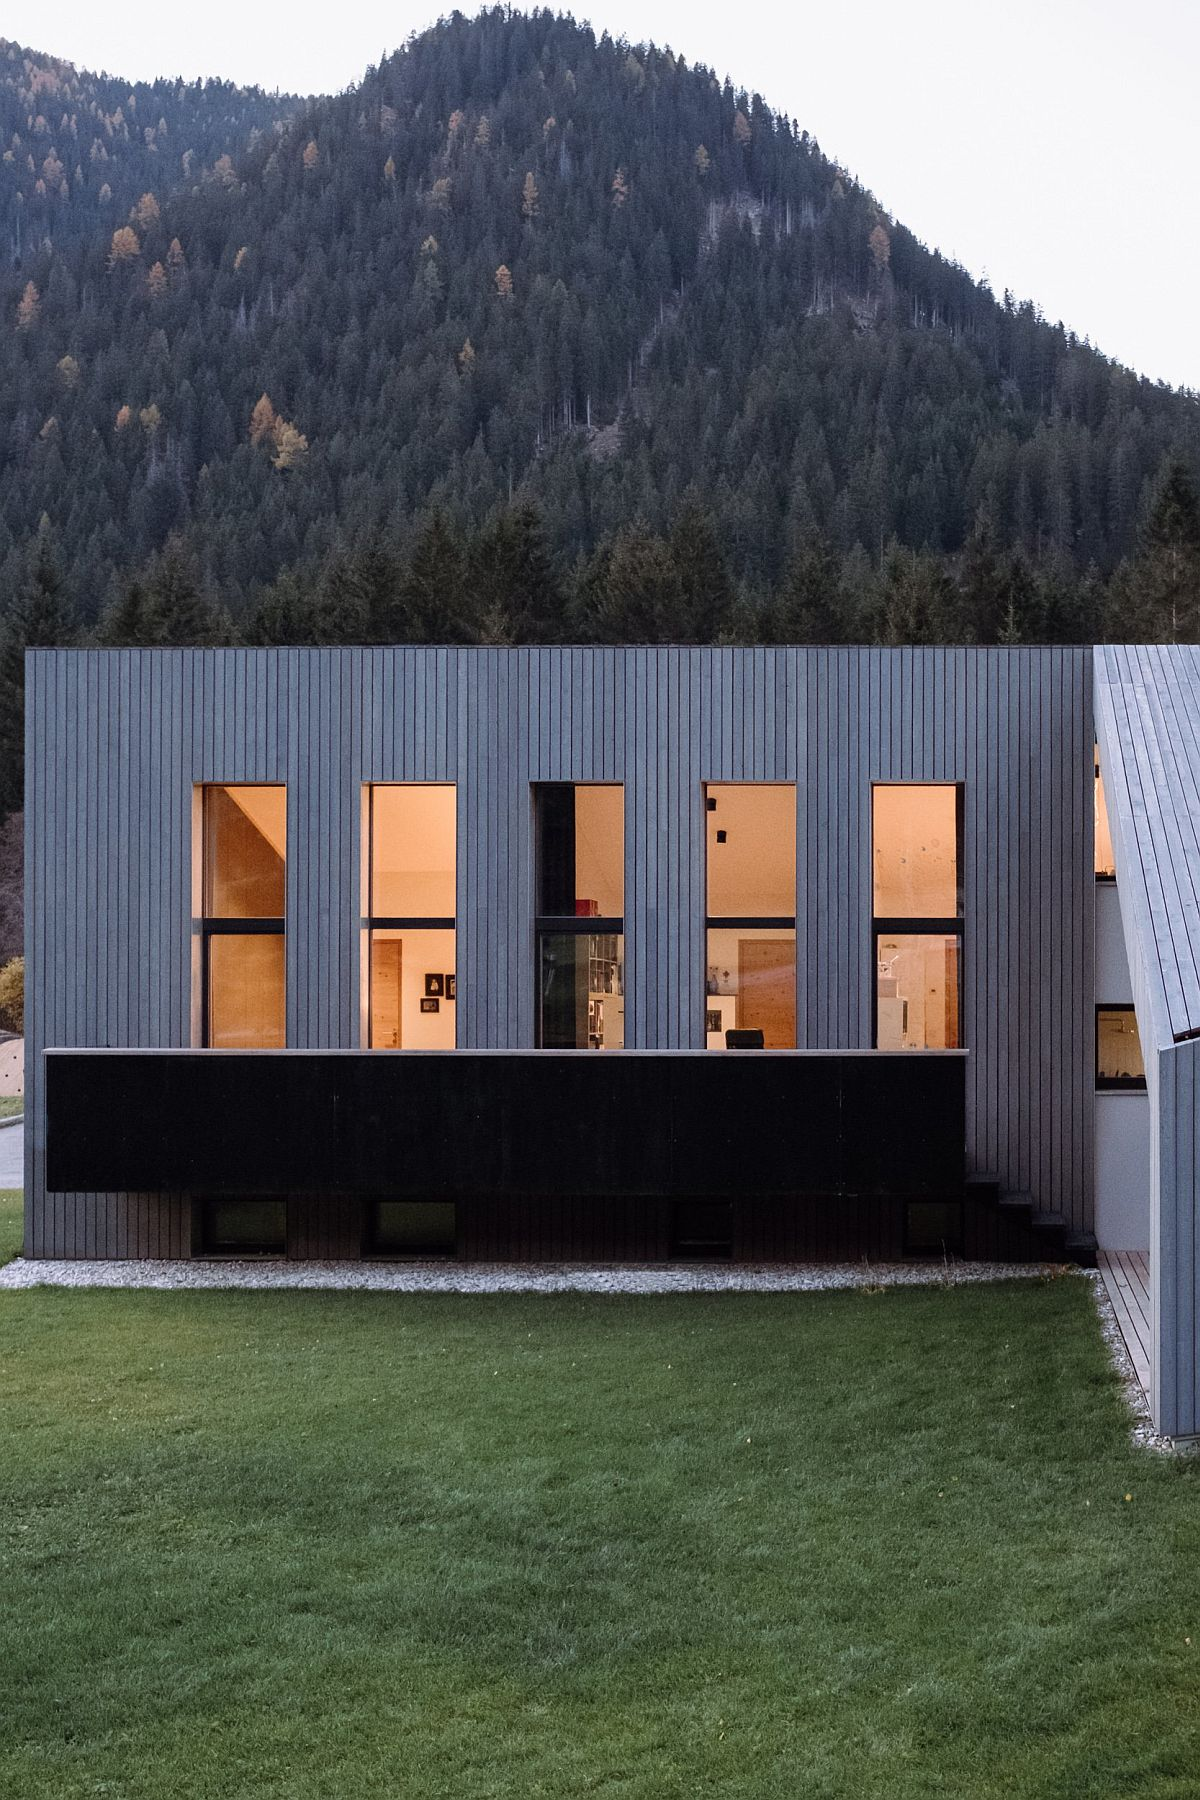 Lovely protected forests and mountains shape the backdrop of the L-shaped house